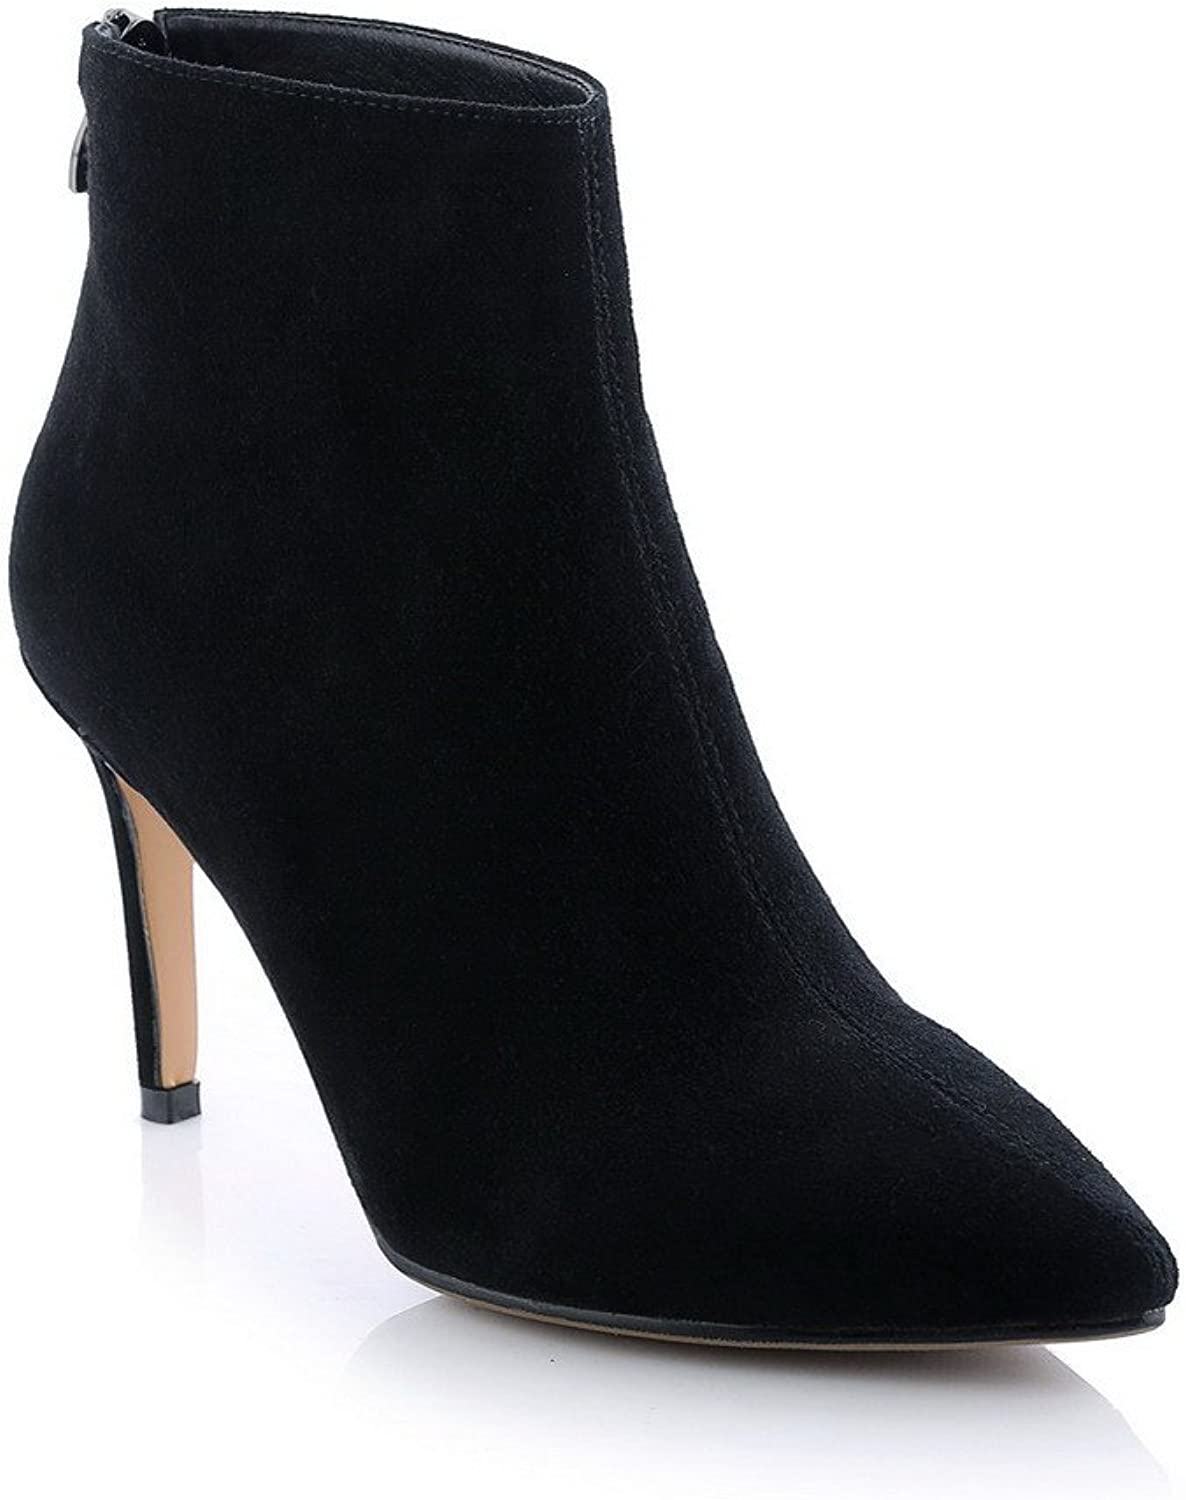 AmoonyFashion Womens Pointed Toe Closed-Toe High-Heels Boots with Slipping Sole and Stiletto shoes